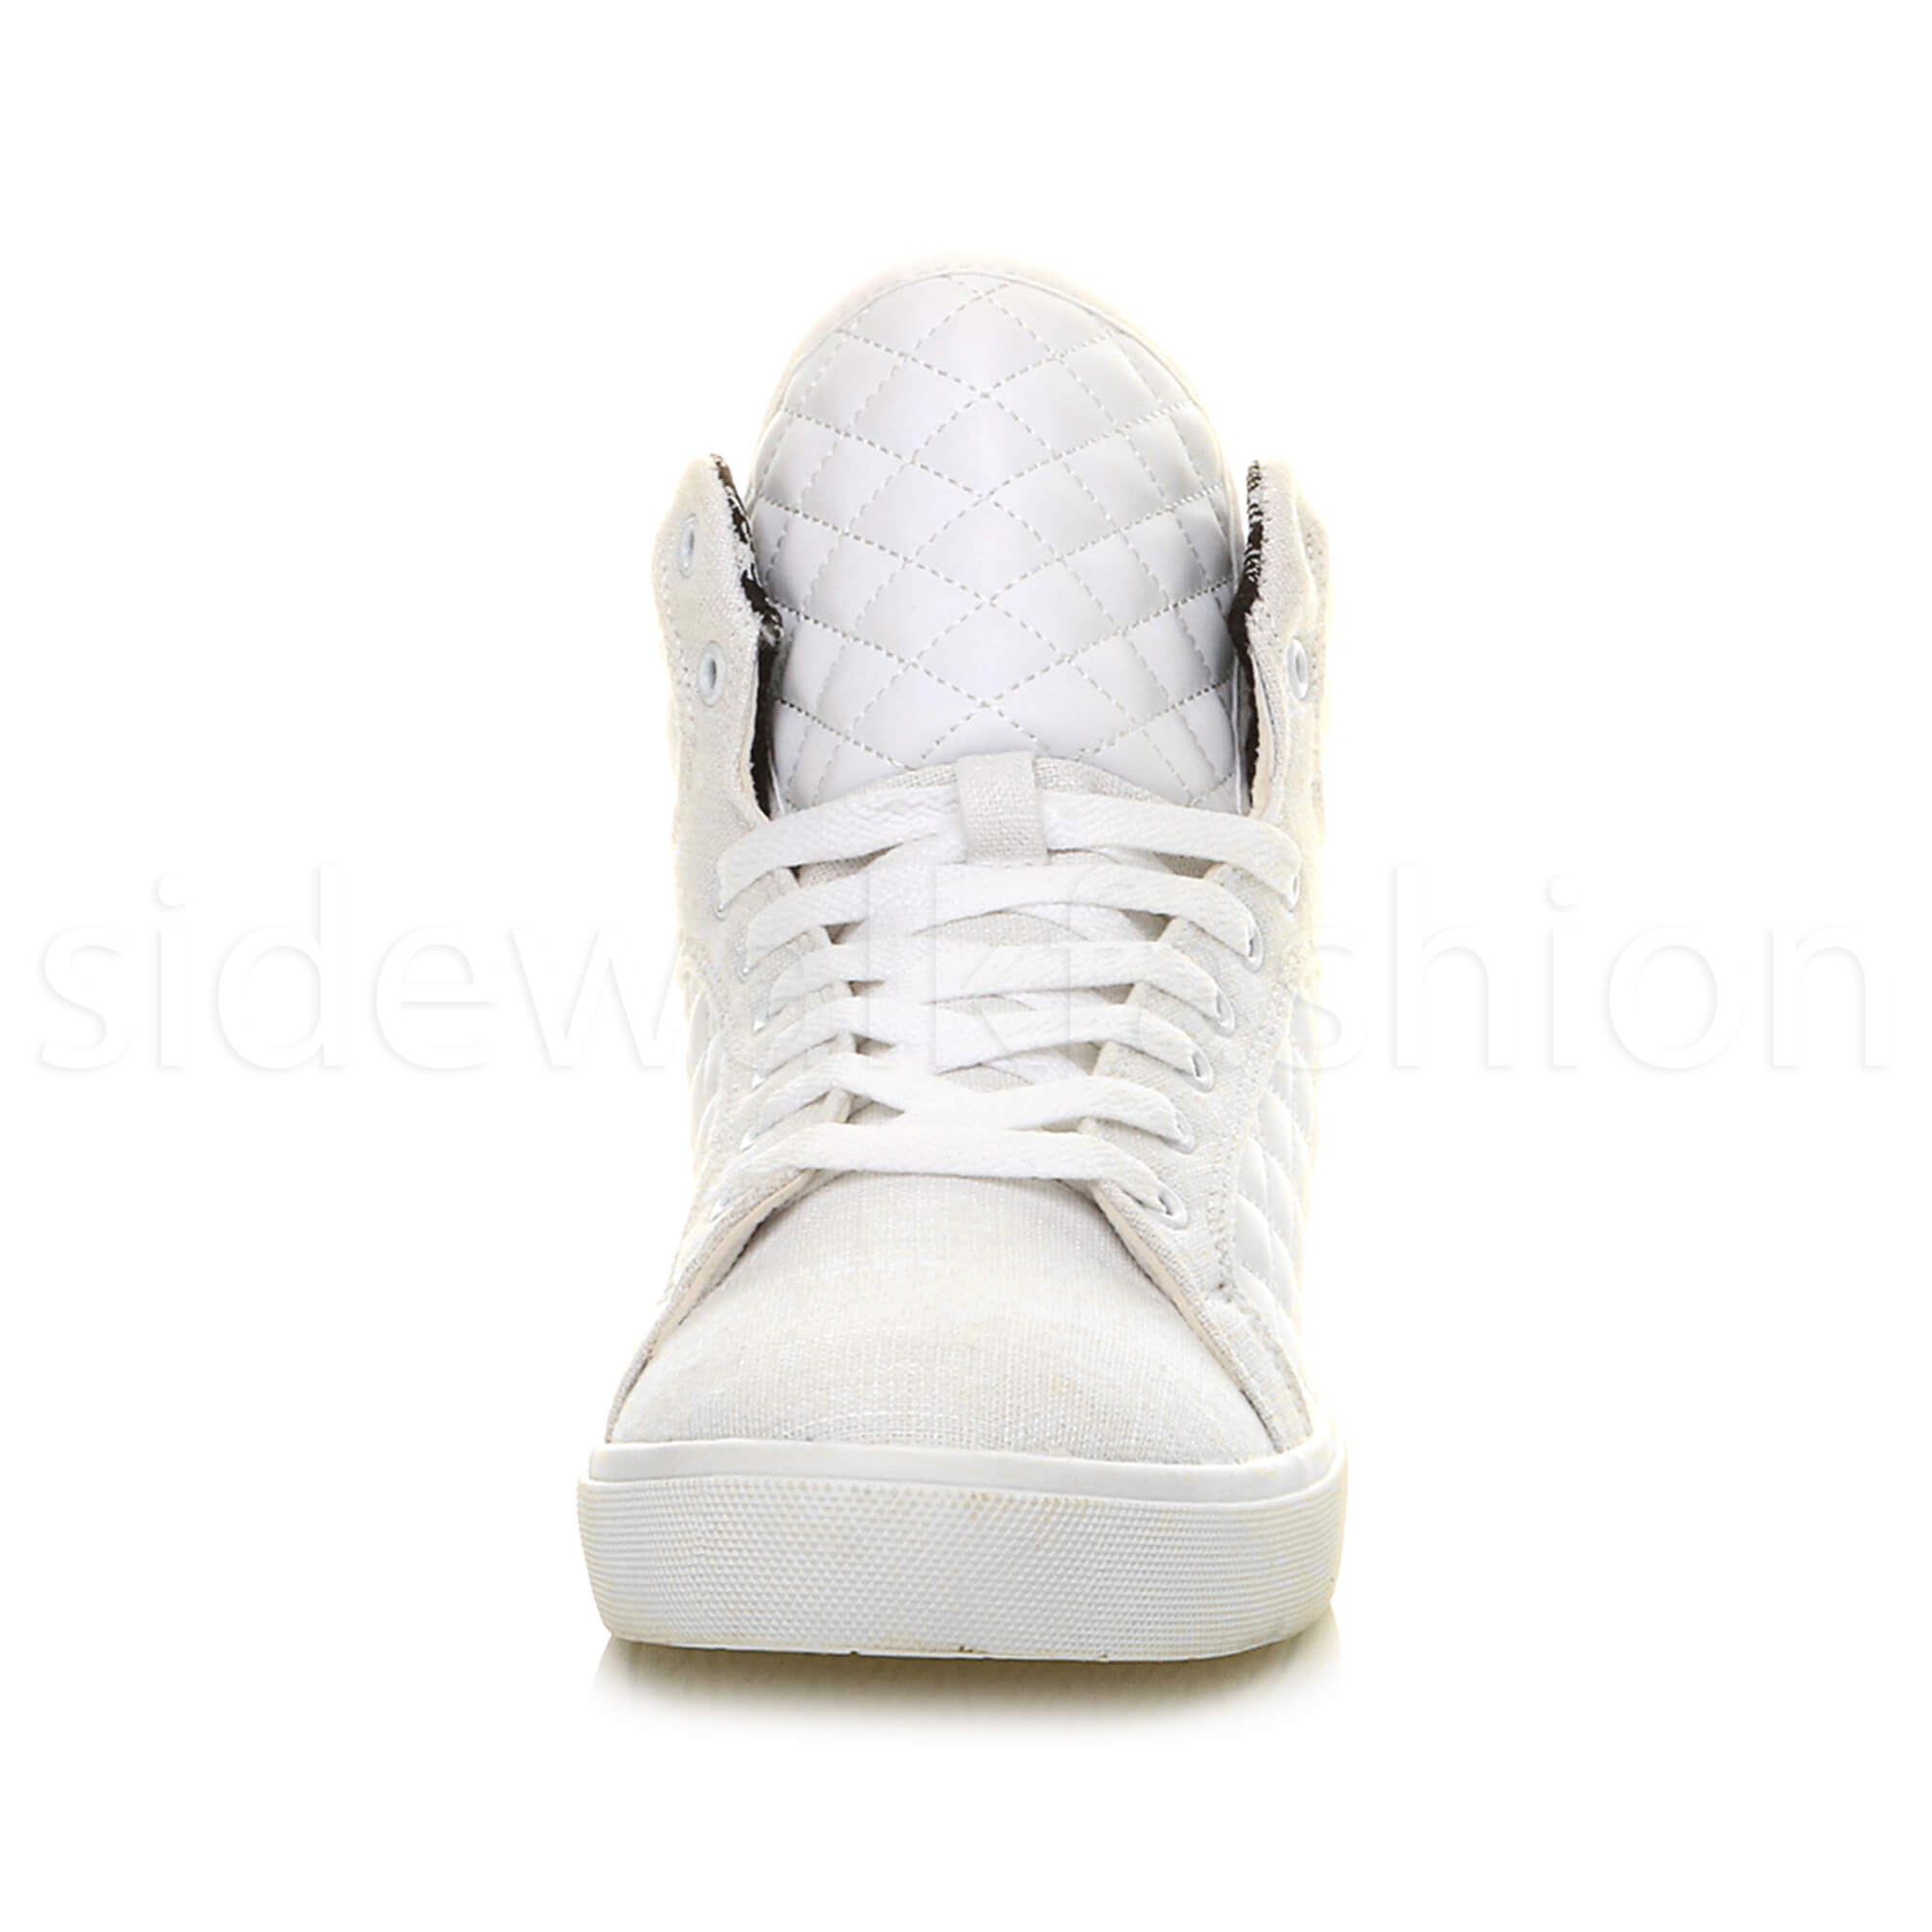 Mens-flat-lace-up-quilted-casual-hi-high-top-ankle-boots-trainers-sneakers-size thumbnail 35